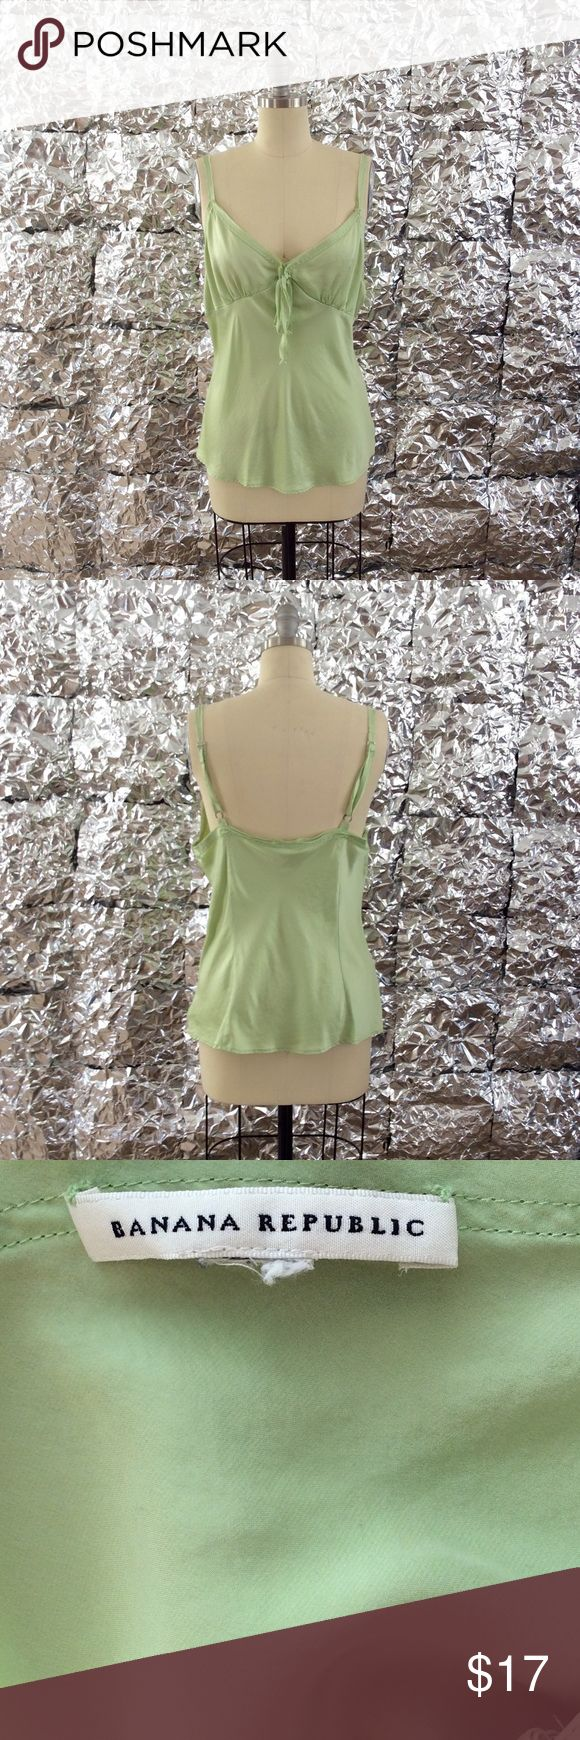 ✨Banana Republic Top✨ Women's Banana Republic top. The size tag is missing, but it looks like a size large. 100% silk. A beautiful garment! Feel free to ask questions or make an offer! ✌🏼️💕 Banana Republic Tops Camisoles